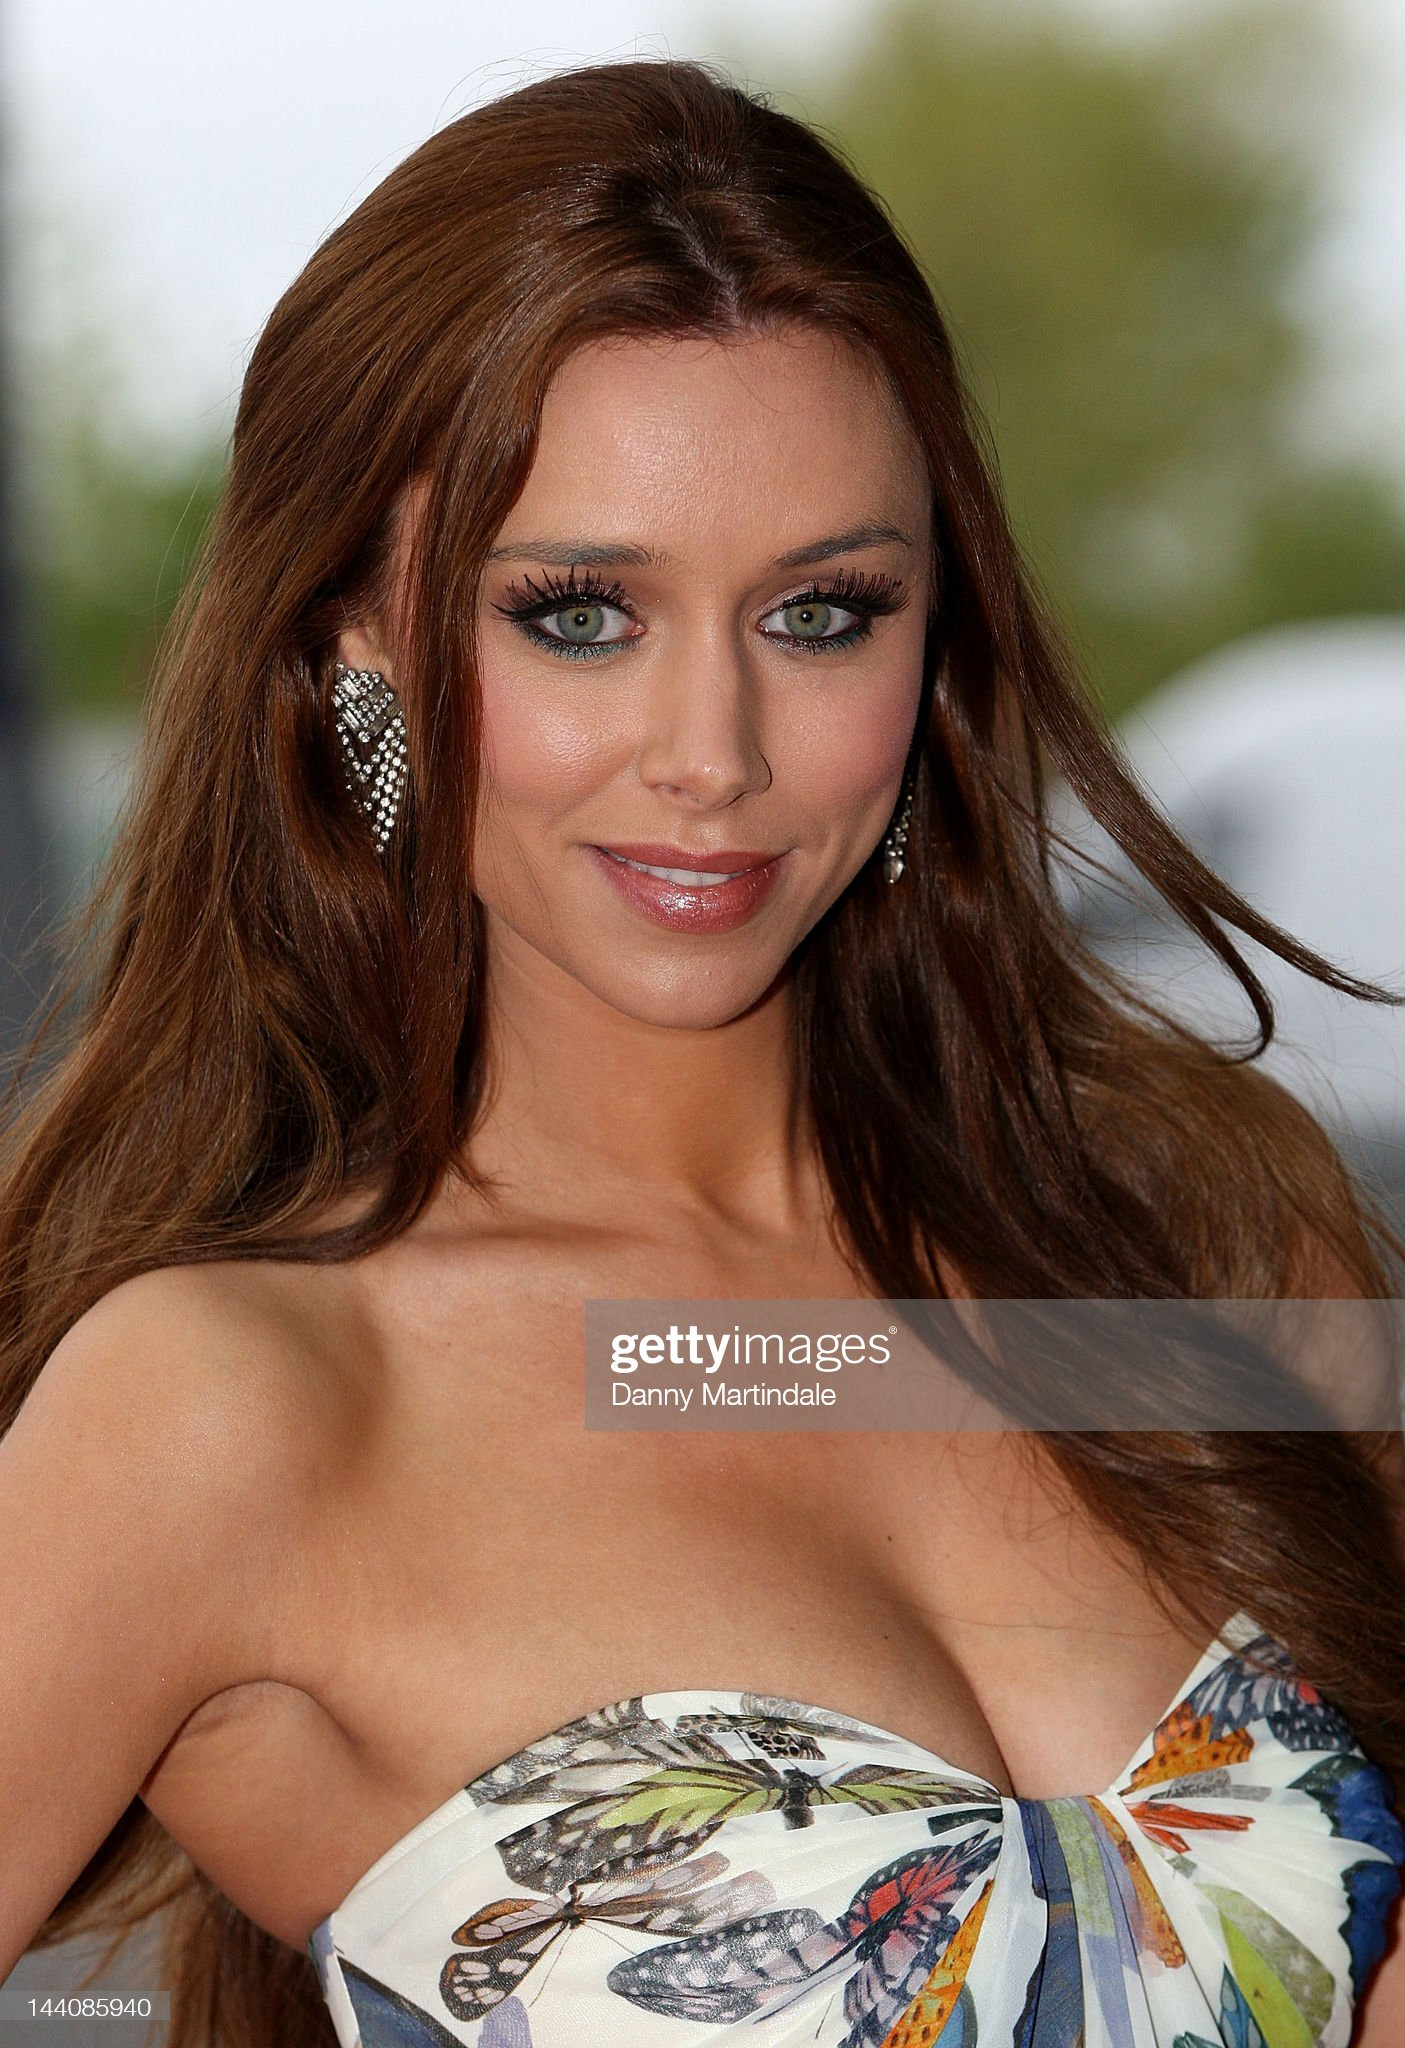 ¿Cuánto mide Una Healy (Una Foden)? - Altura - Real height Una-healy-attends-rugby-for-heroes-kicking-trauma-into-touch-charity-picture-id144085940?s=2048x2048